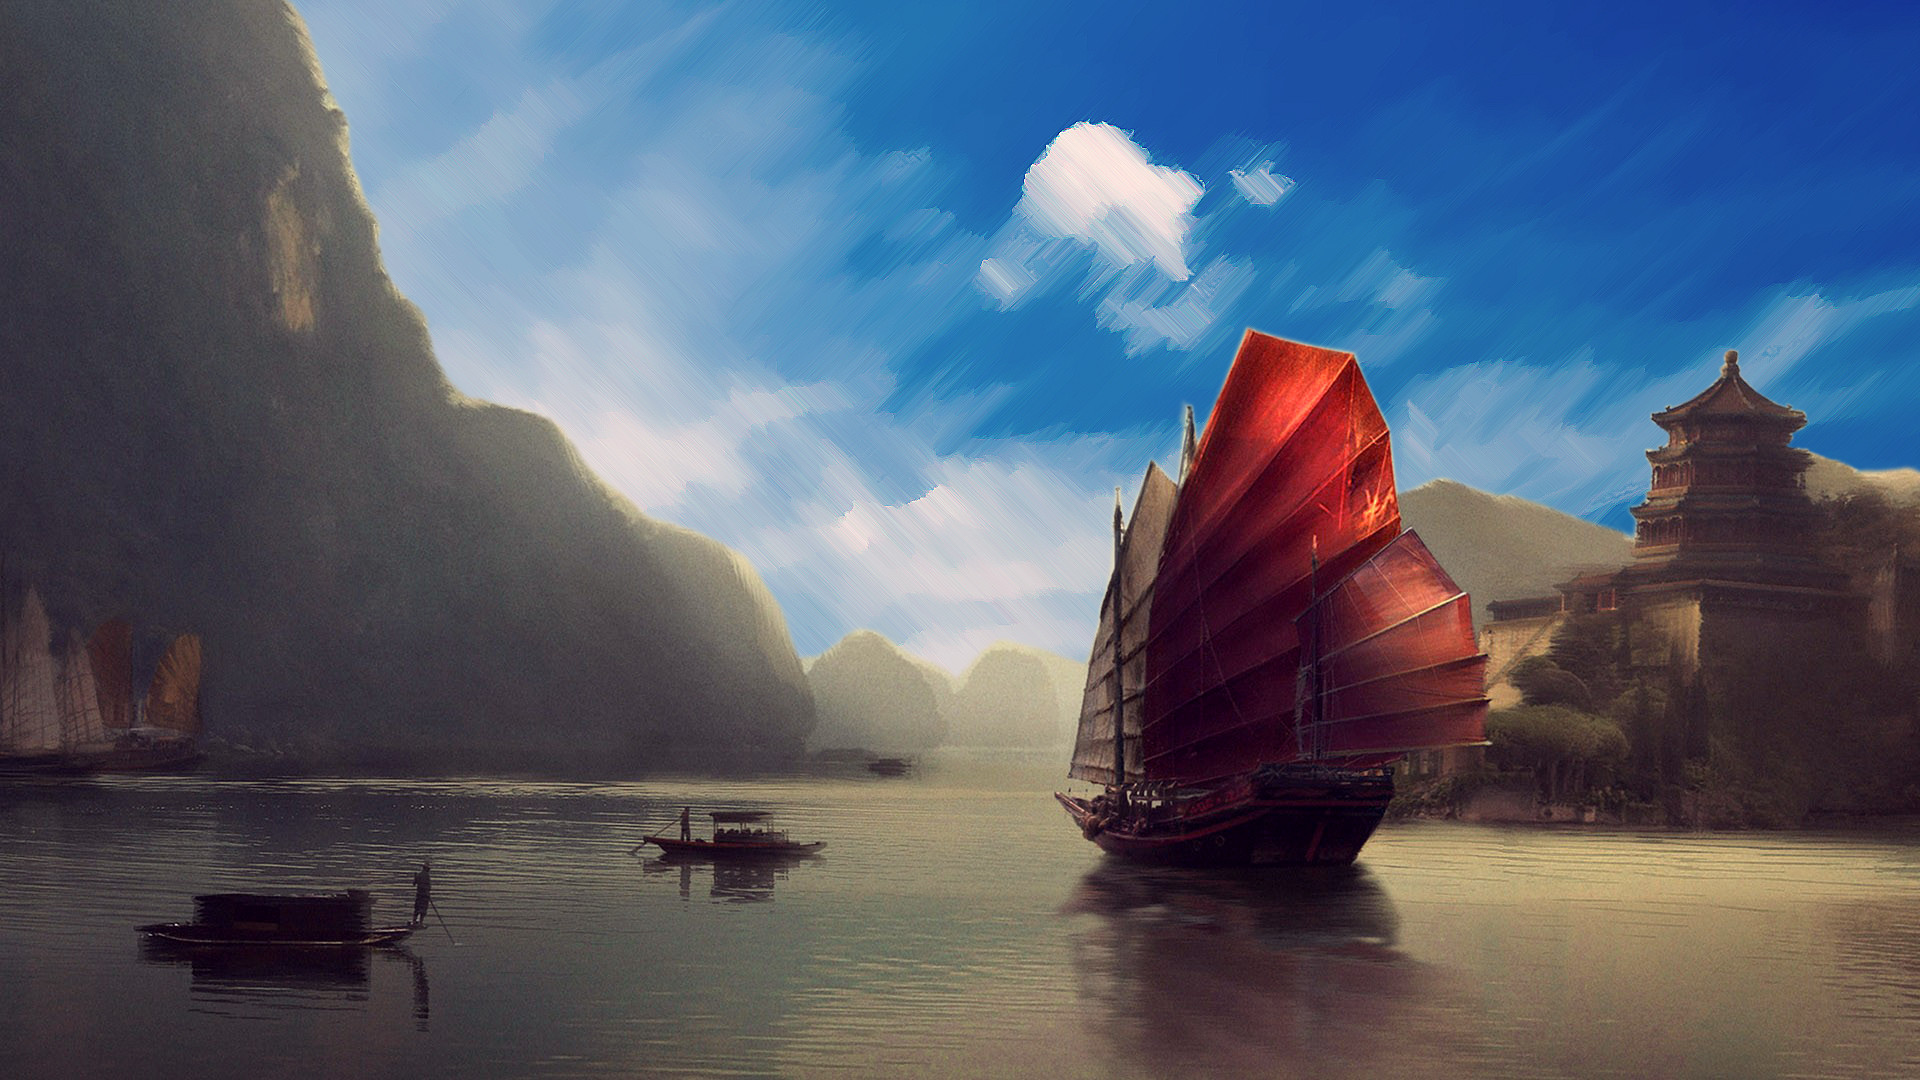 Res: 1920x1080, asian scenery wallpaper chinese landscape wallpaper 3554×1999